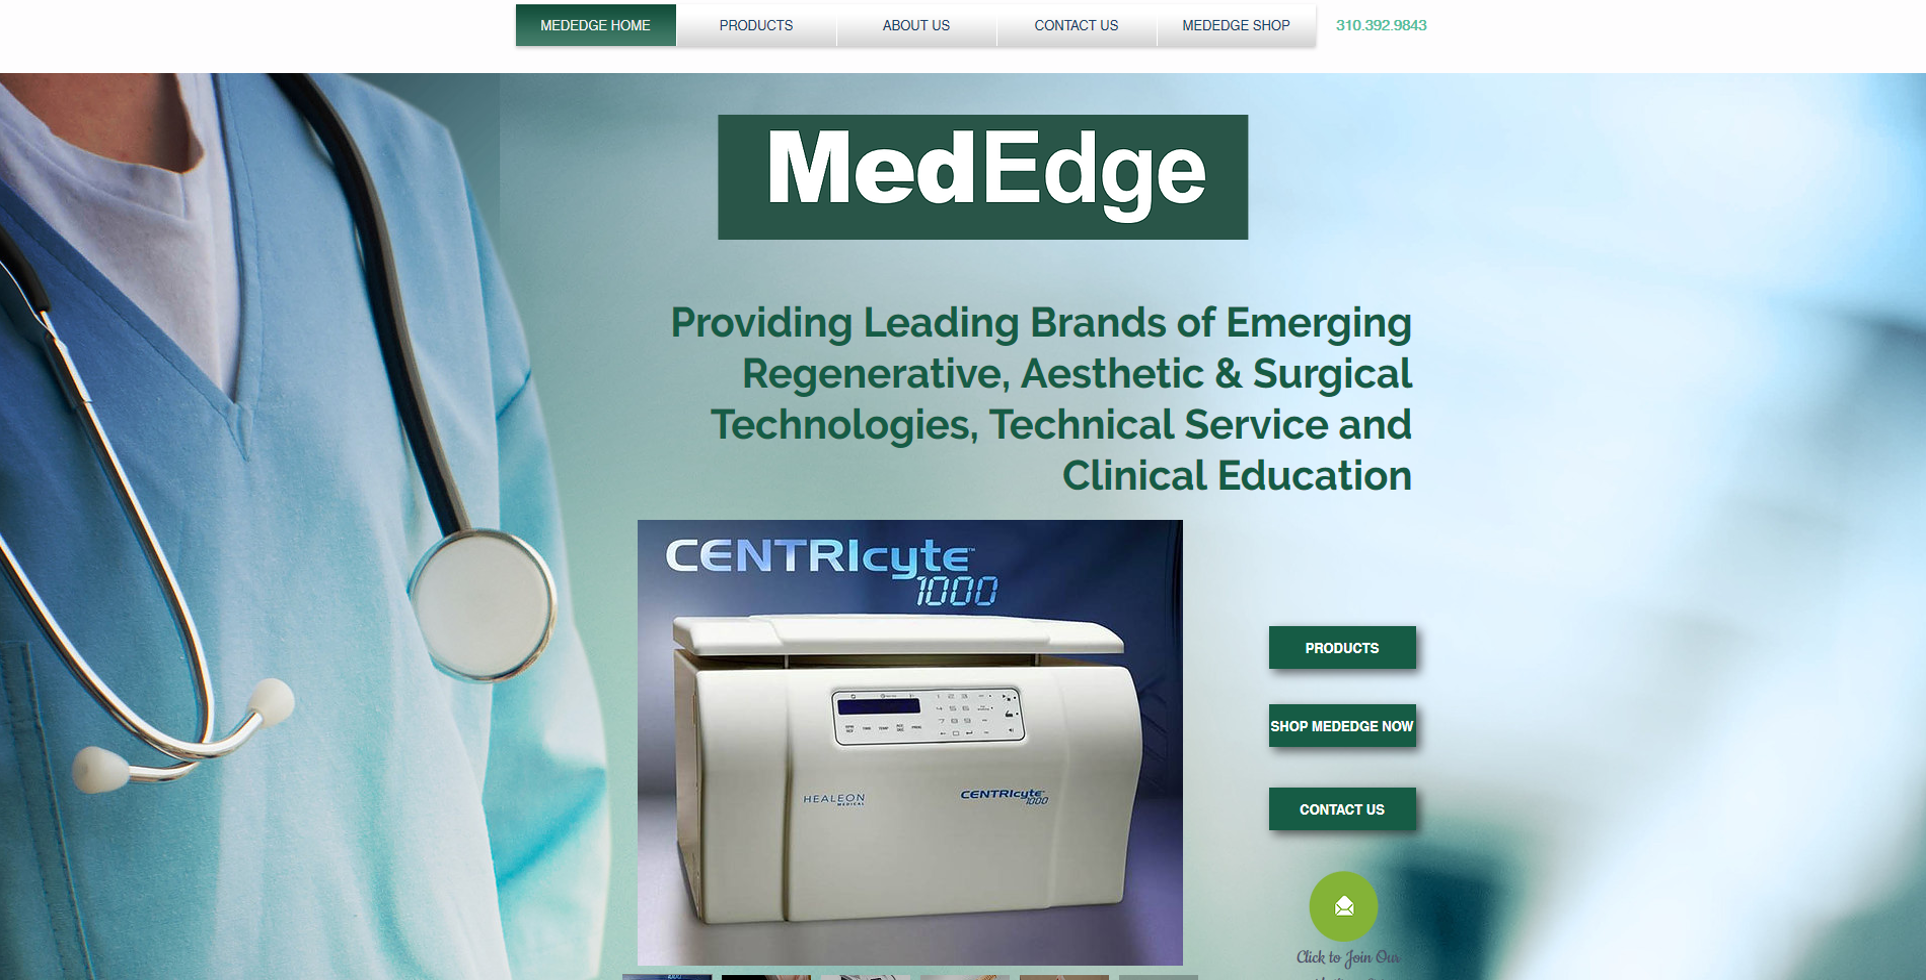 MedEdge website